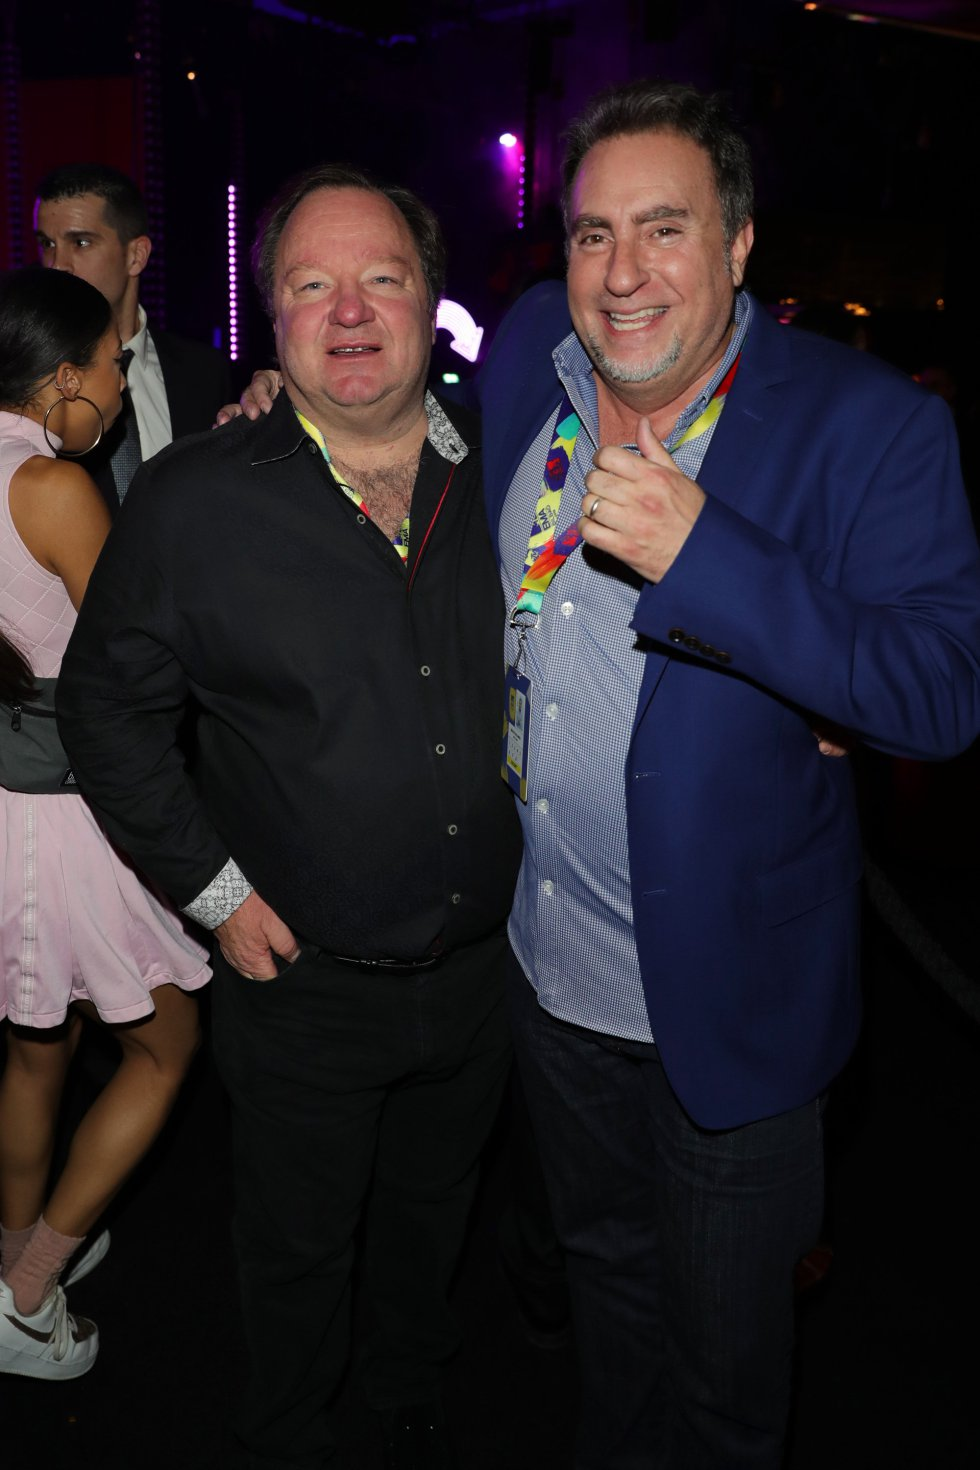 BILBAO, SPAIN - NOVEMBER 04:  (L-R) Viacom CEO Bob Bakish and Global Head of Music and Talent, Viacom and Co-brand Head MTV International Bruce Gillmer attend the MTV EMAs 2018 after show party at Bilbao Exhibition Centre on November 4, 2018 in Bilbao, Spain.  (Photo by Andreas Rentz/Getty Images for MTV)